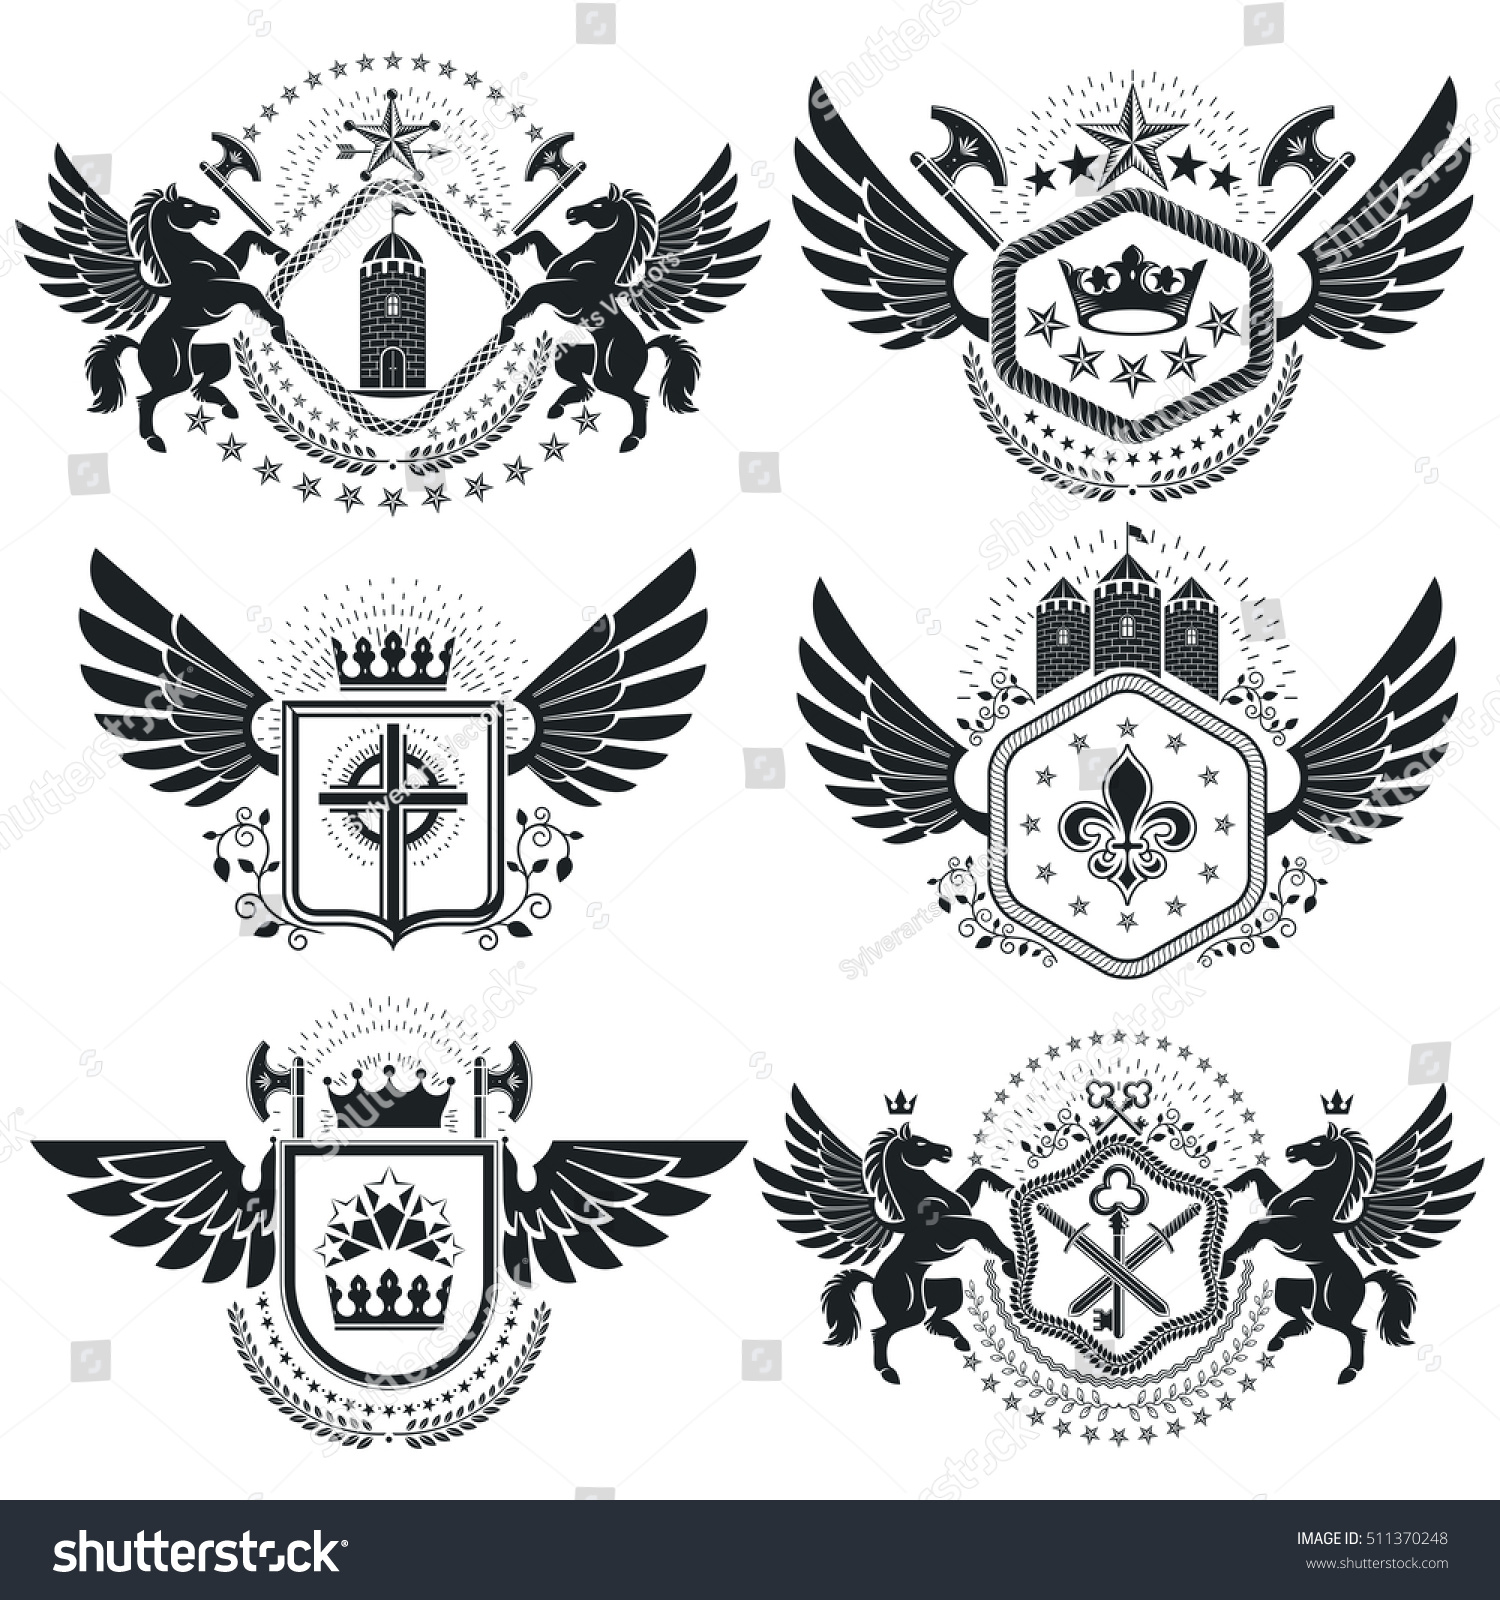 Heraldic coat arms vintage vector emblems stock vector 511370248 heraldic coat of arms vintage vector emblems classy high quality symbolic illustrations collection biocorpaavc Images